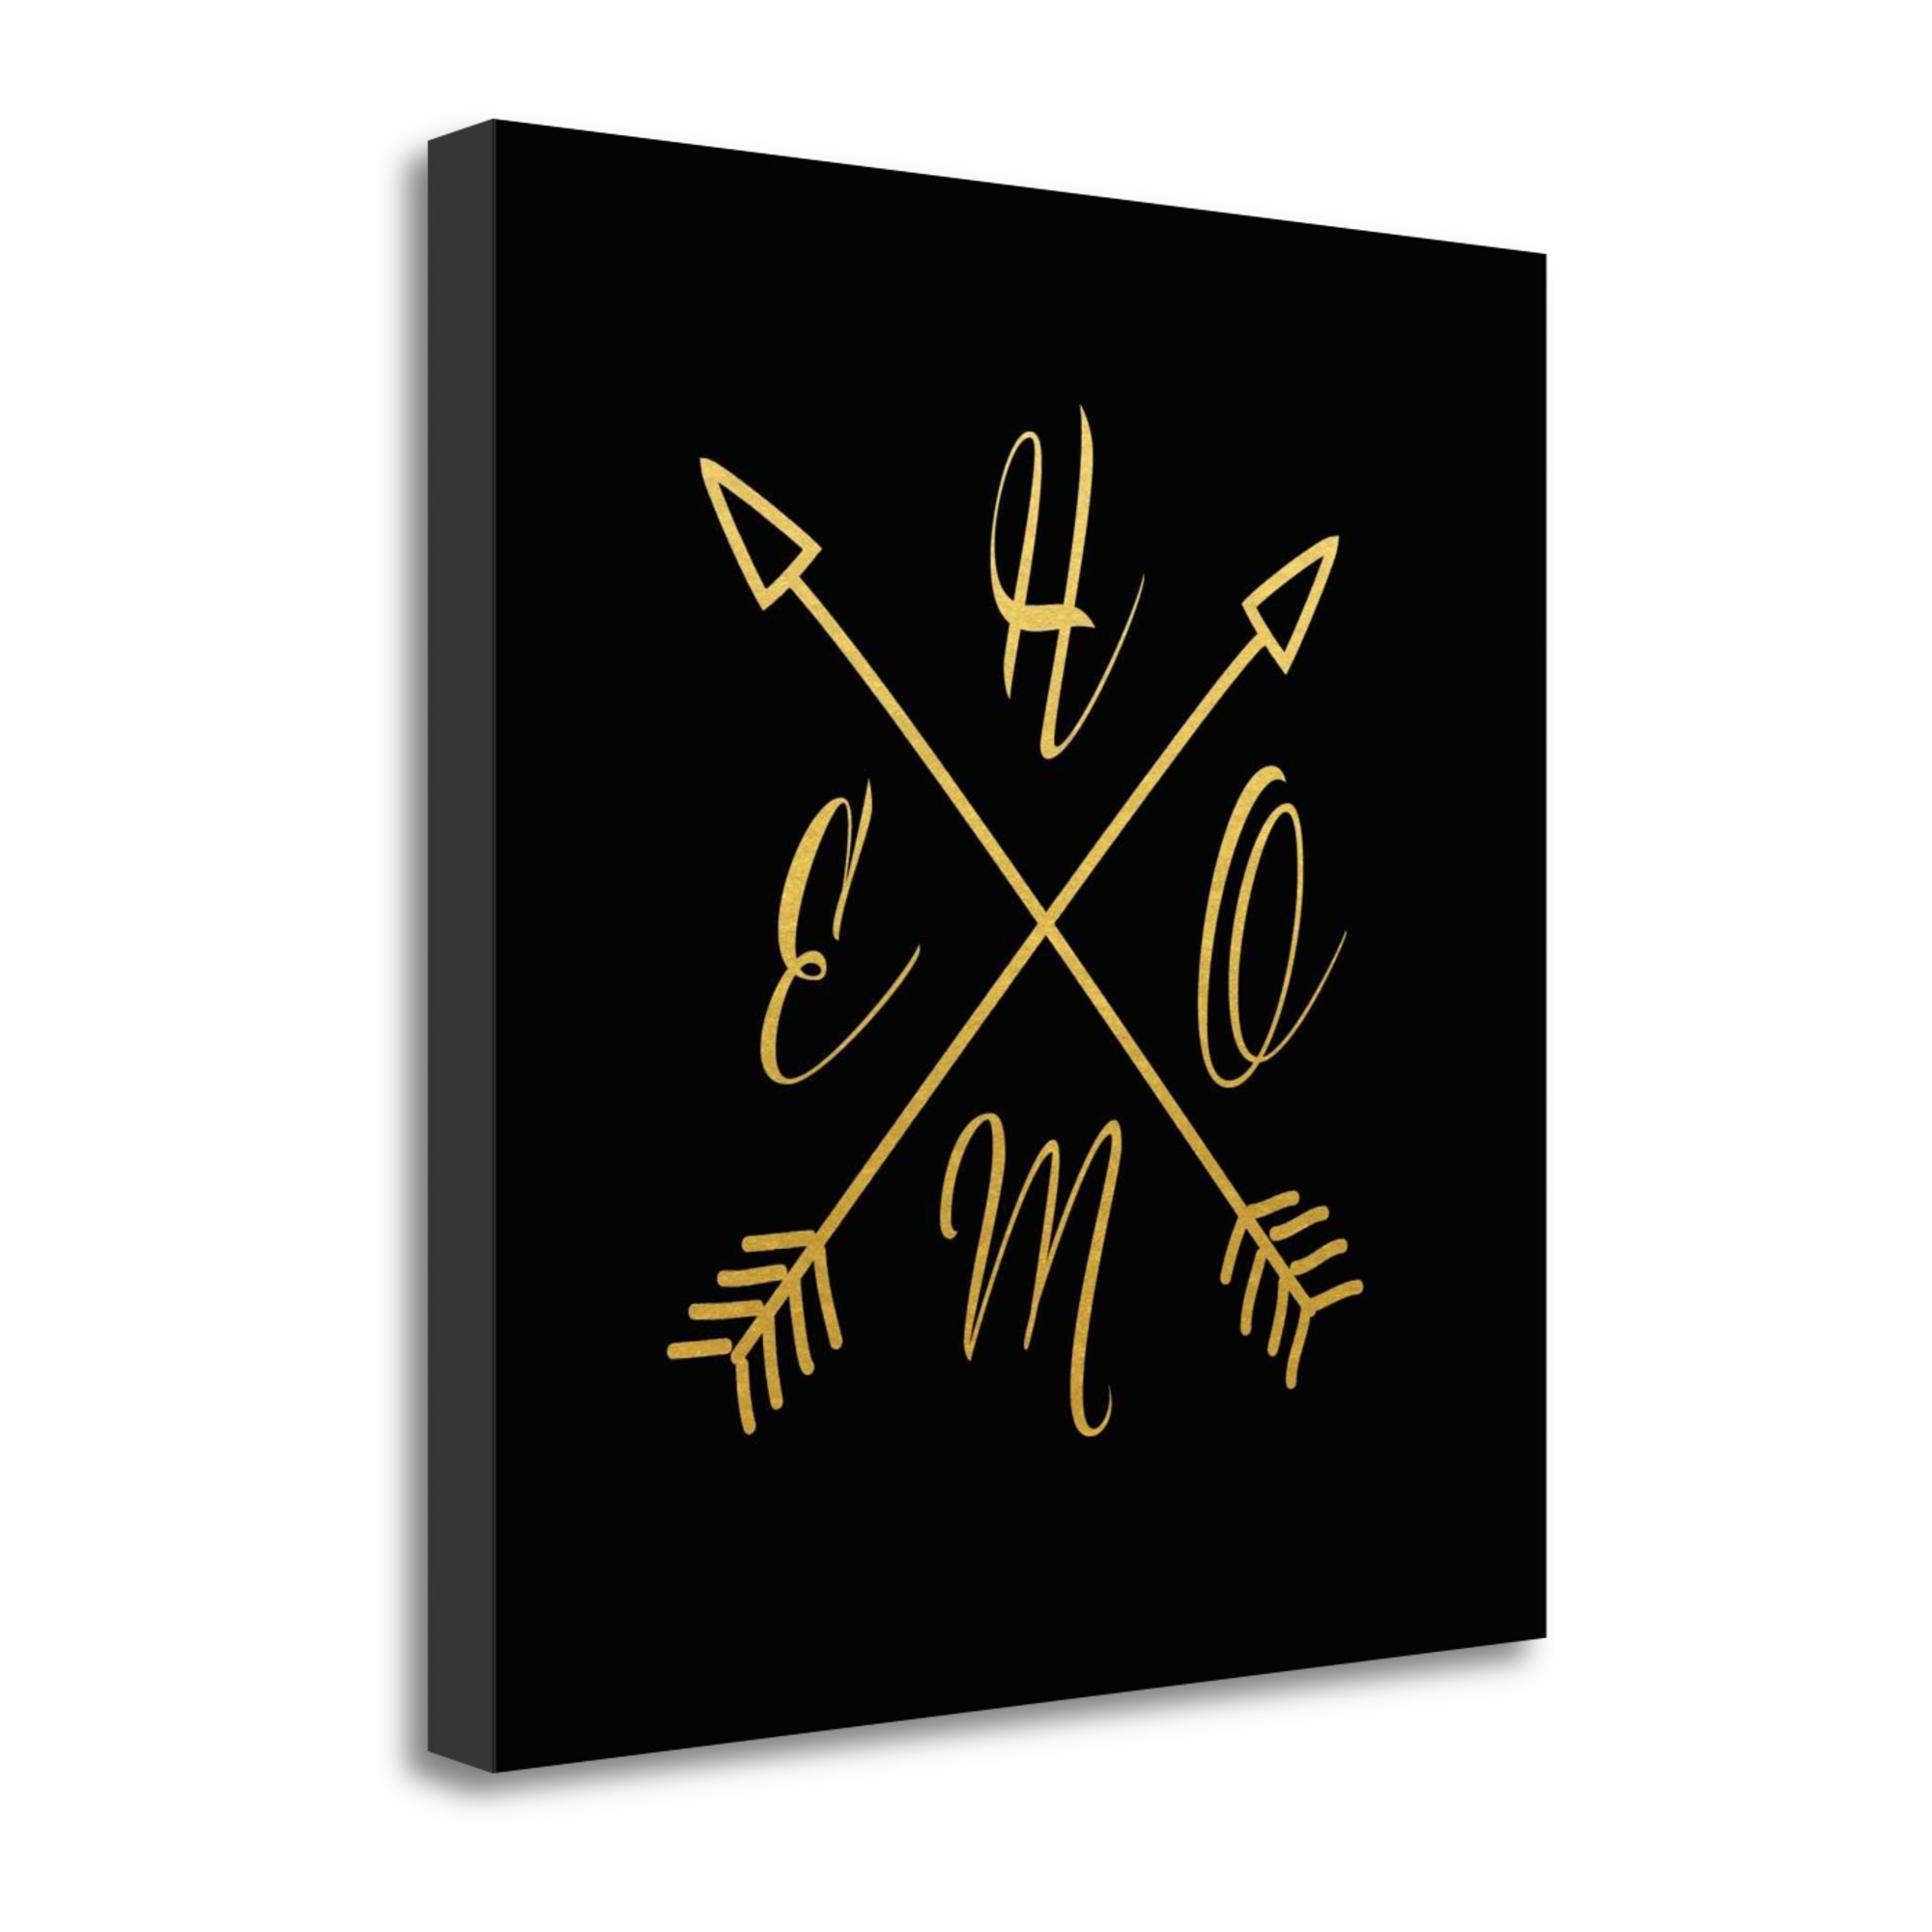 "Home Arrows By Tara Moss, 29"" x 29\"" Fine Art Giclee Print on Gallery Wrap Canvas, Ready to Hang"